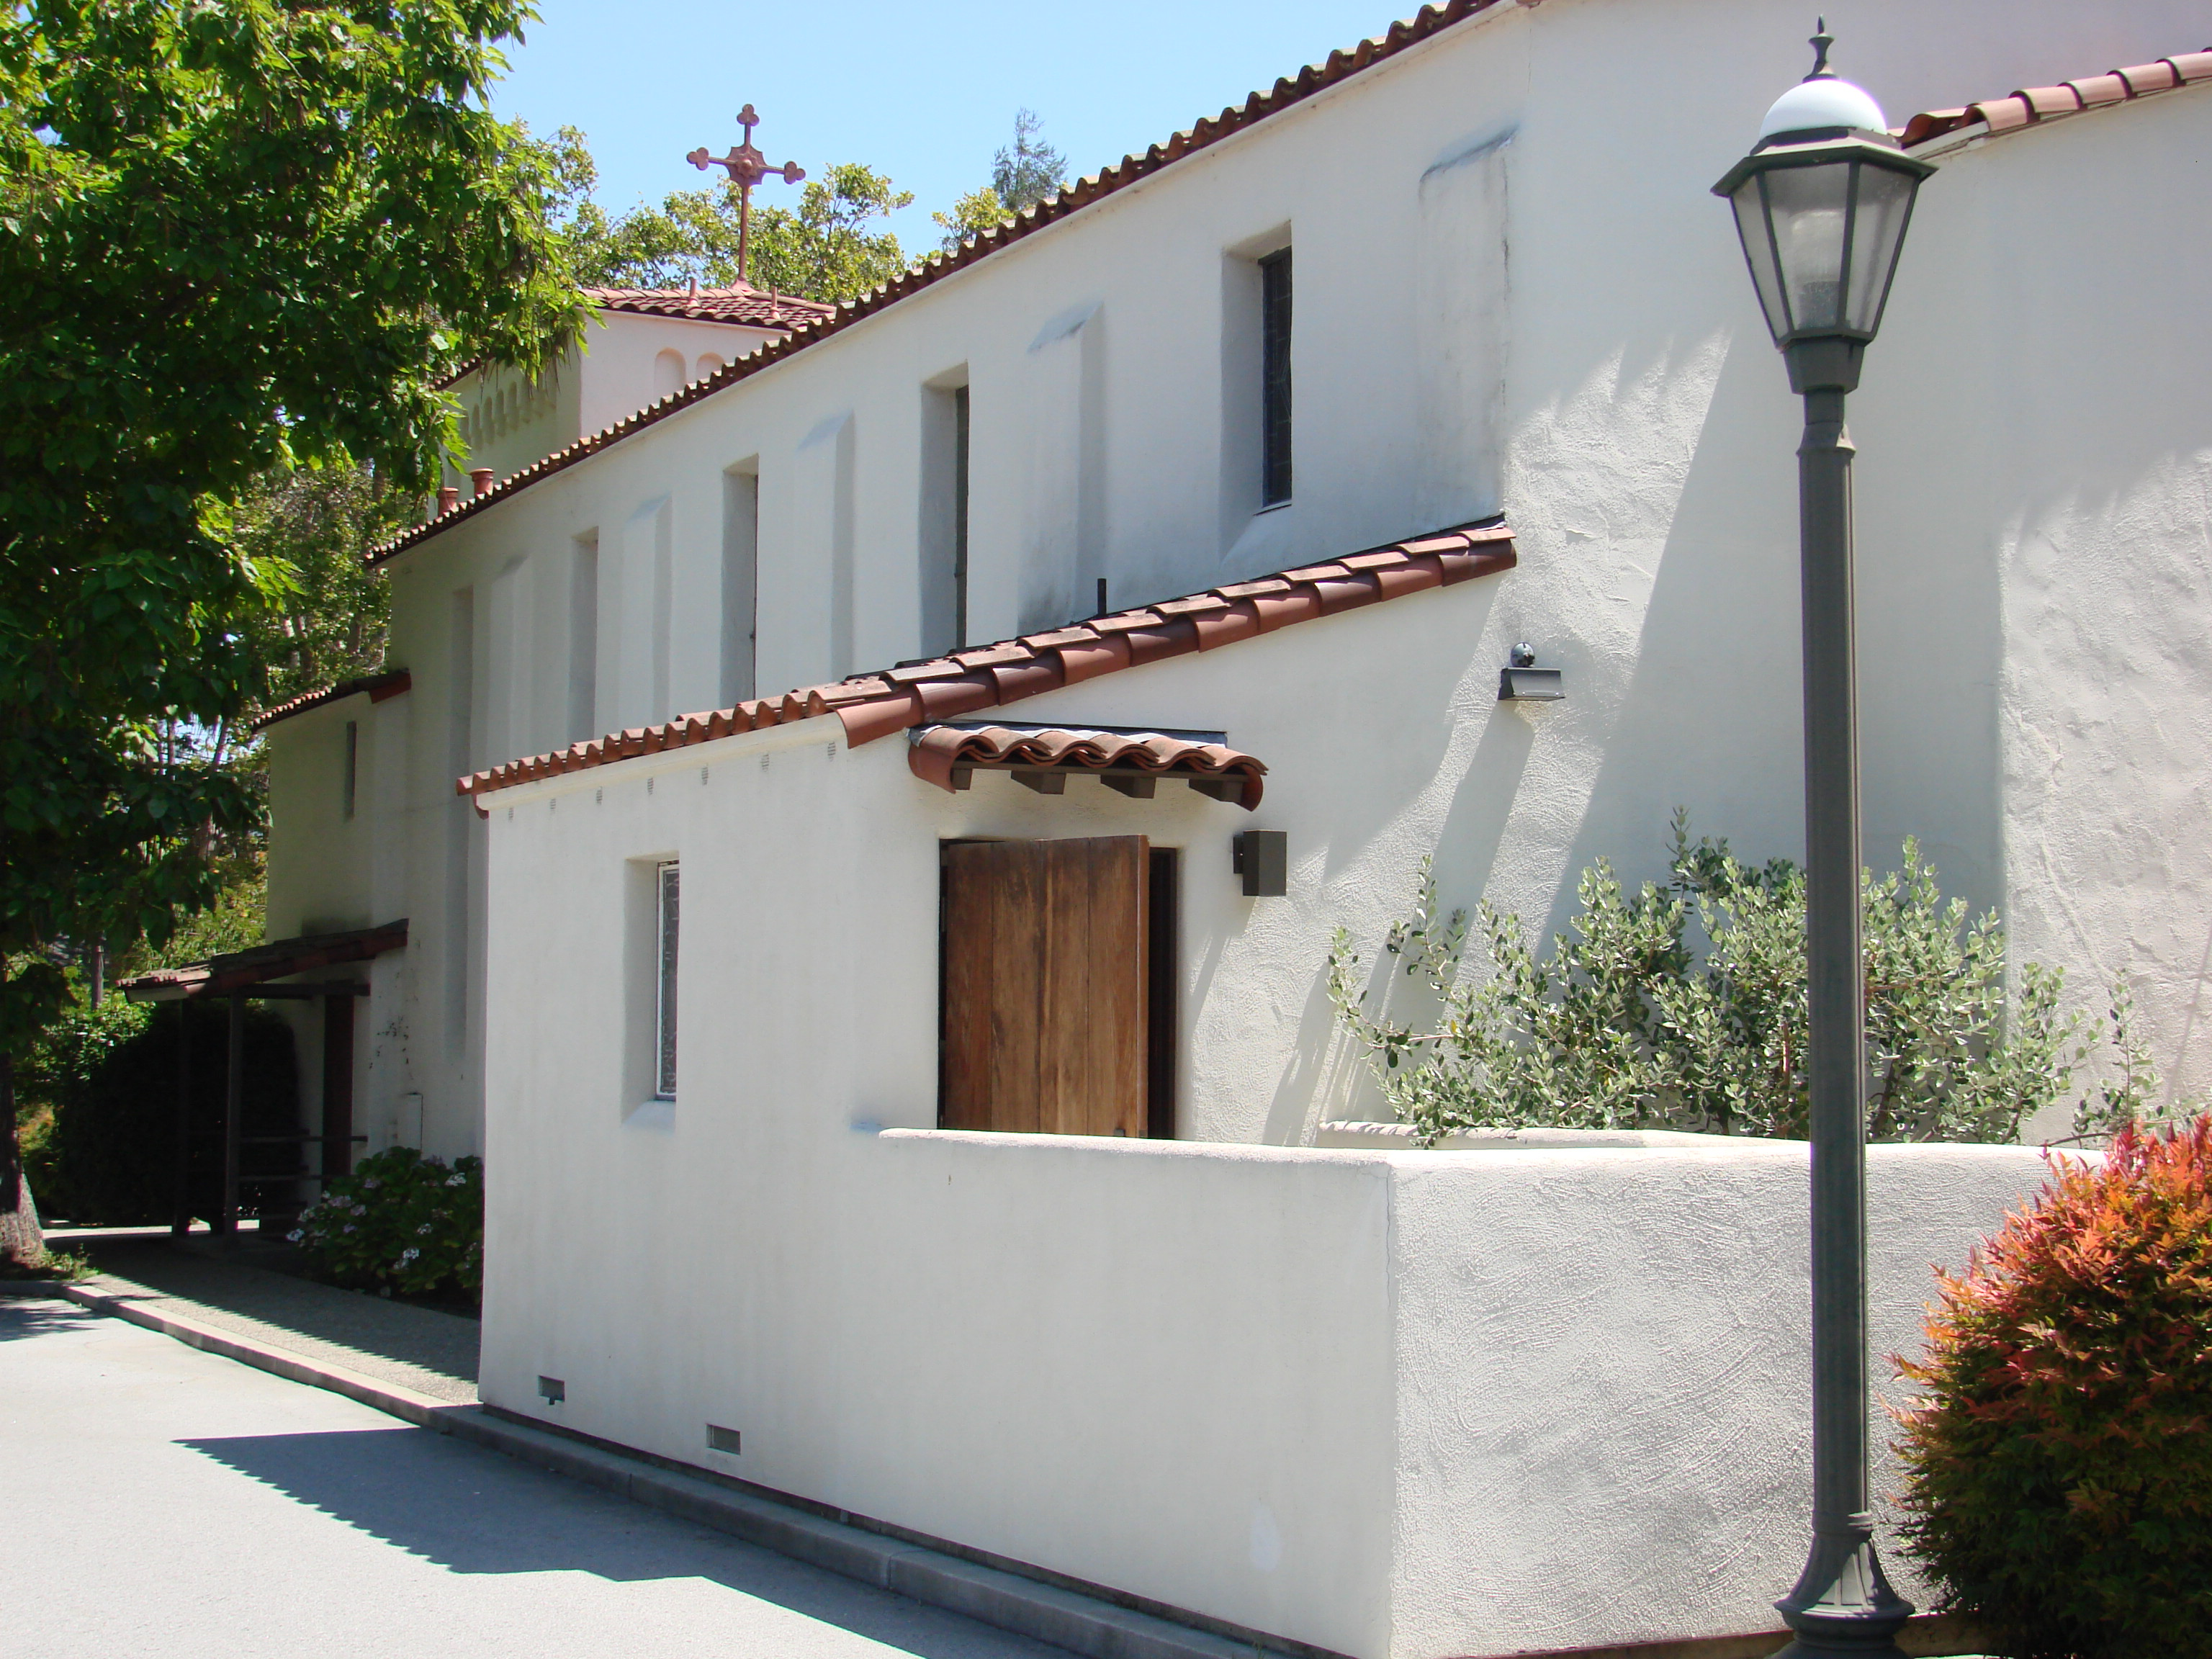 California mission style architecture - Ah